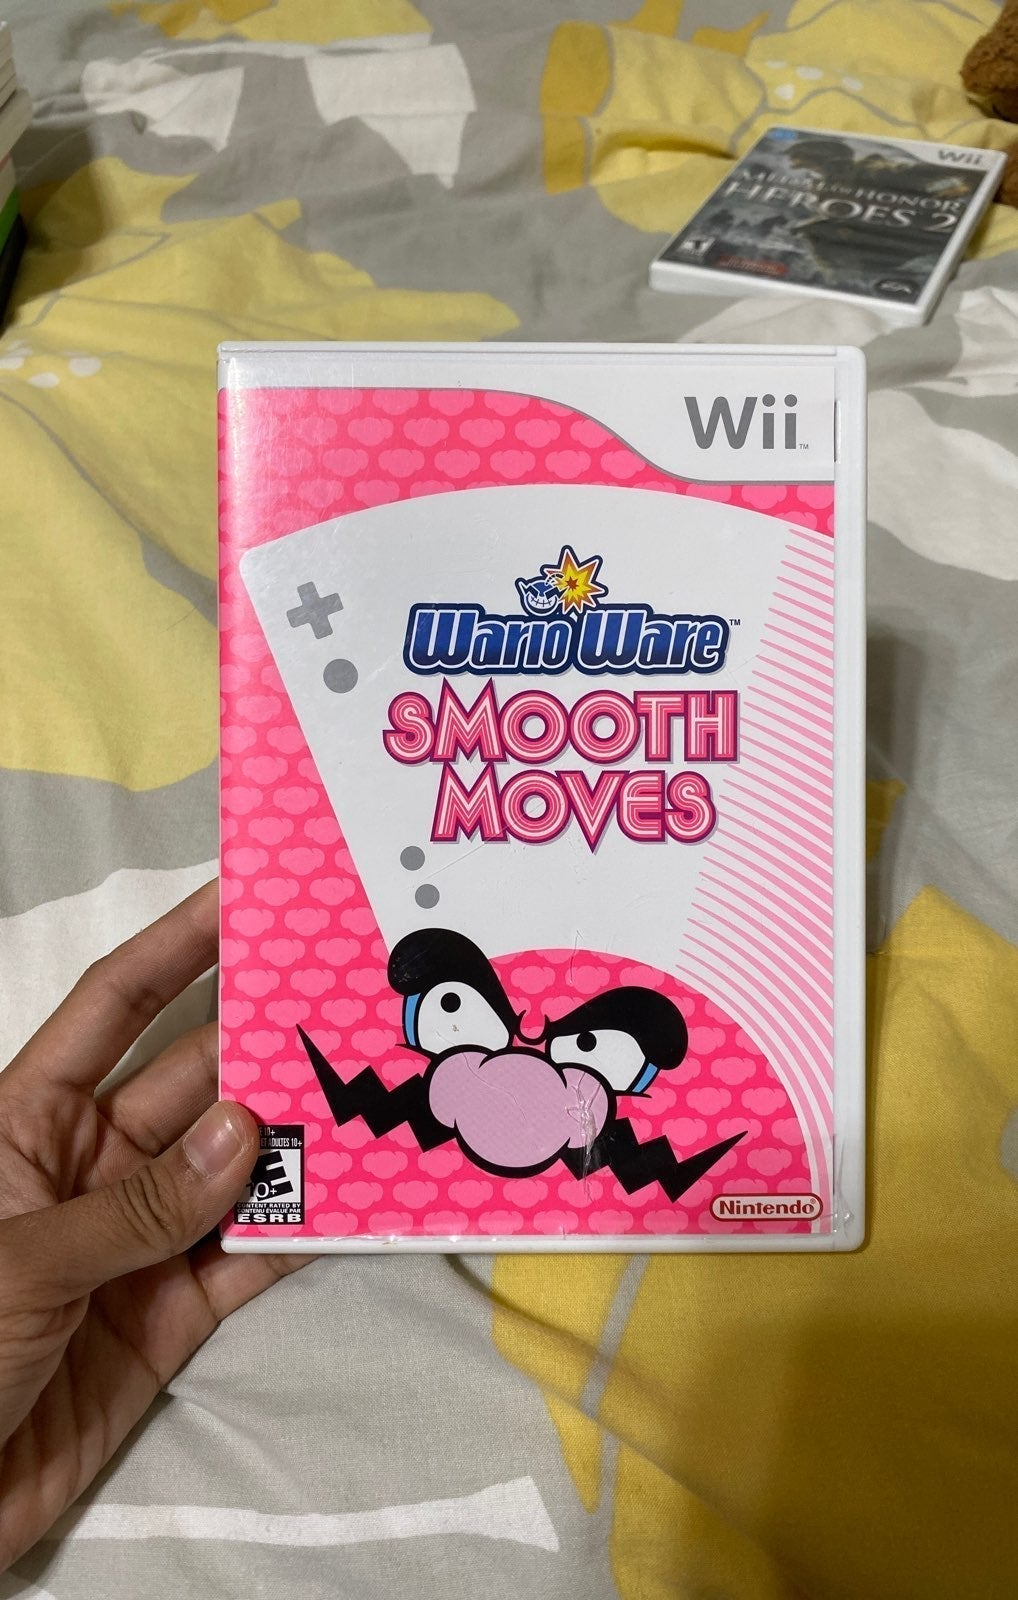 WarioWare Smooth Moves Wii Game